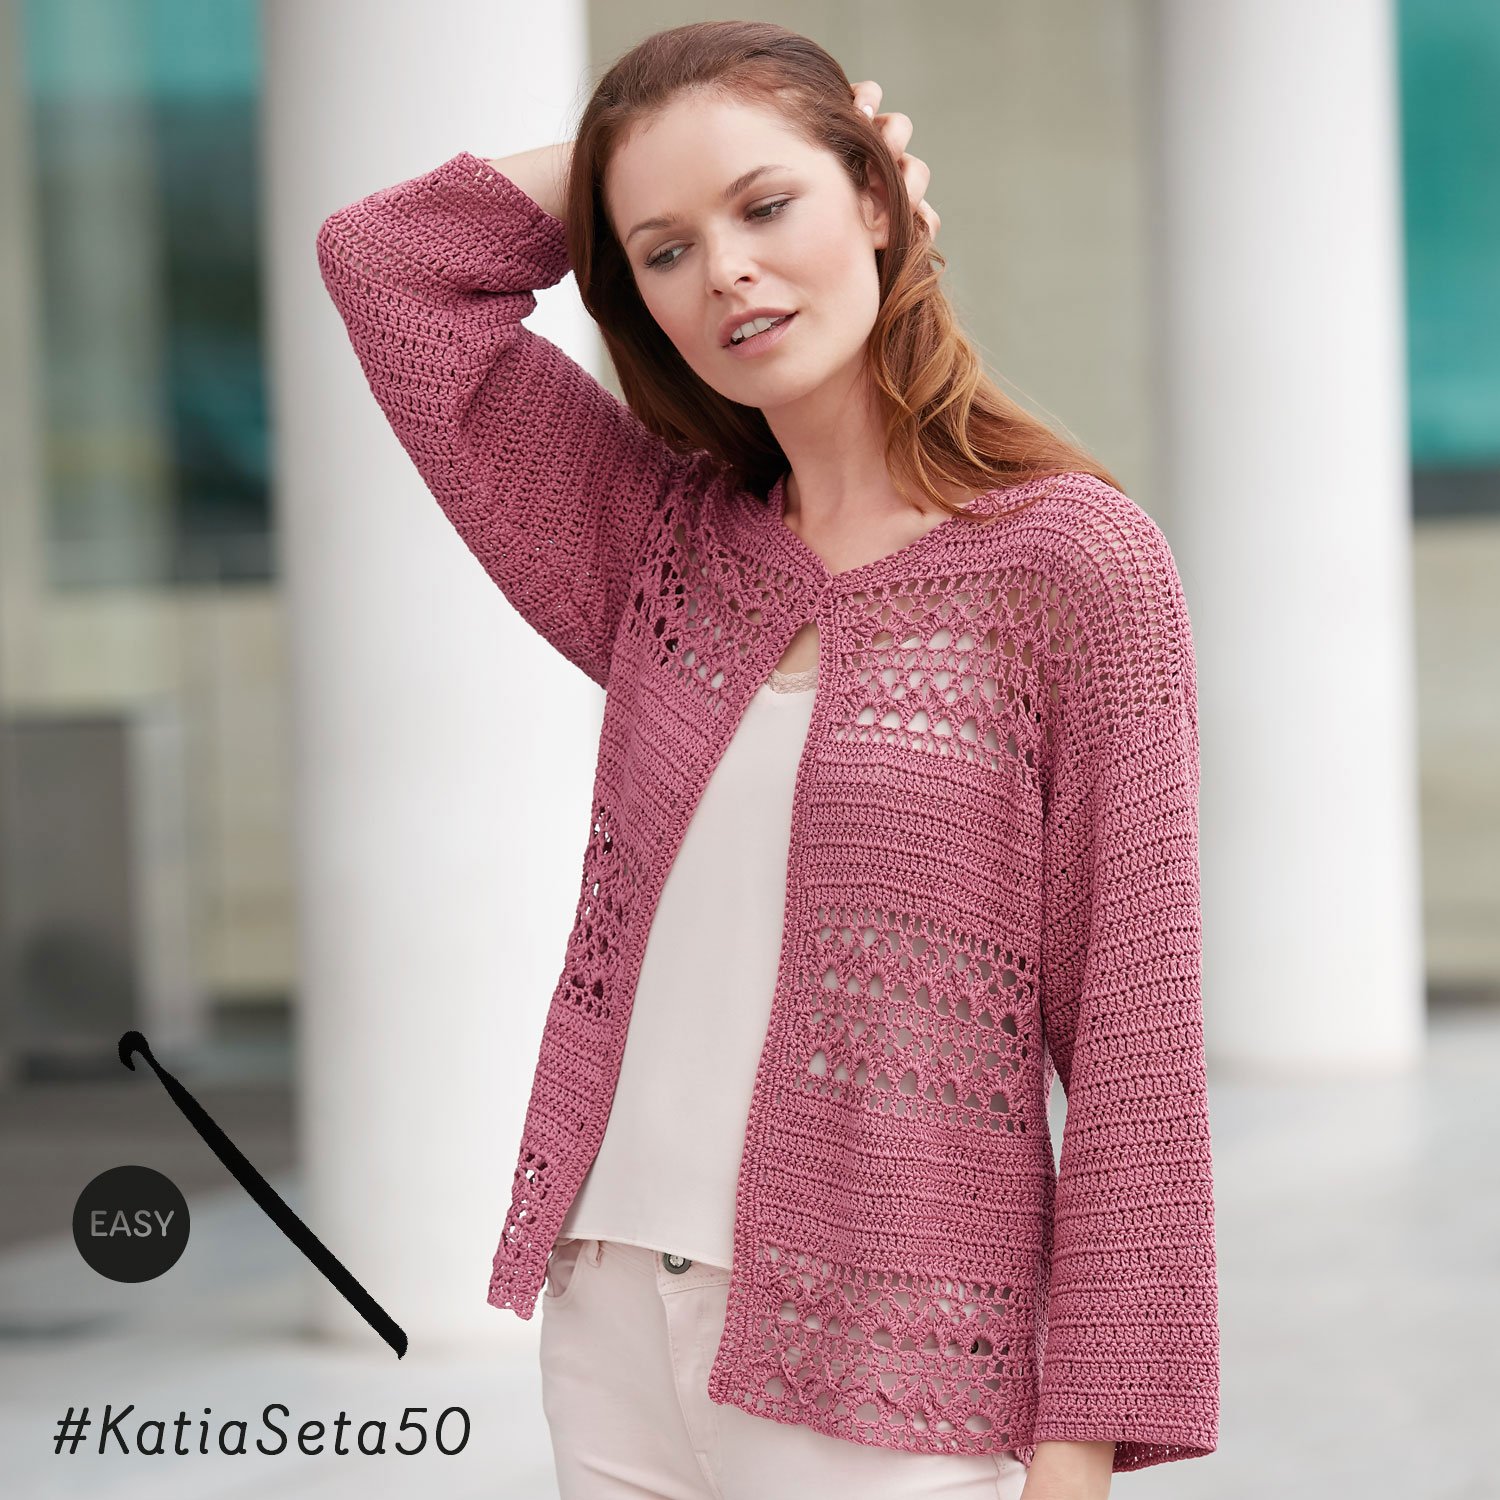 32f99489b97bdd 10 easy elegant knitwear designs using our carefully selected natural yarns  from Concept by Katia